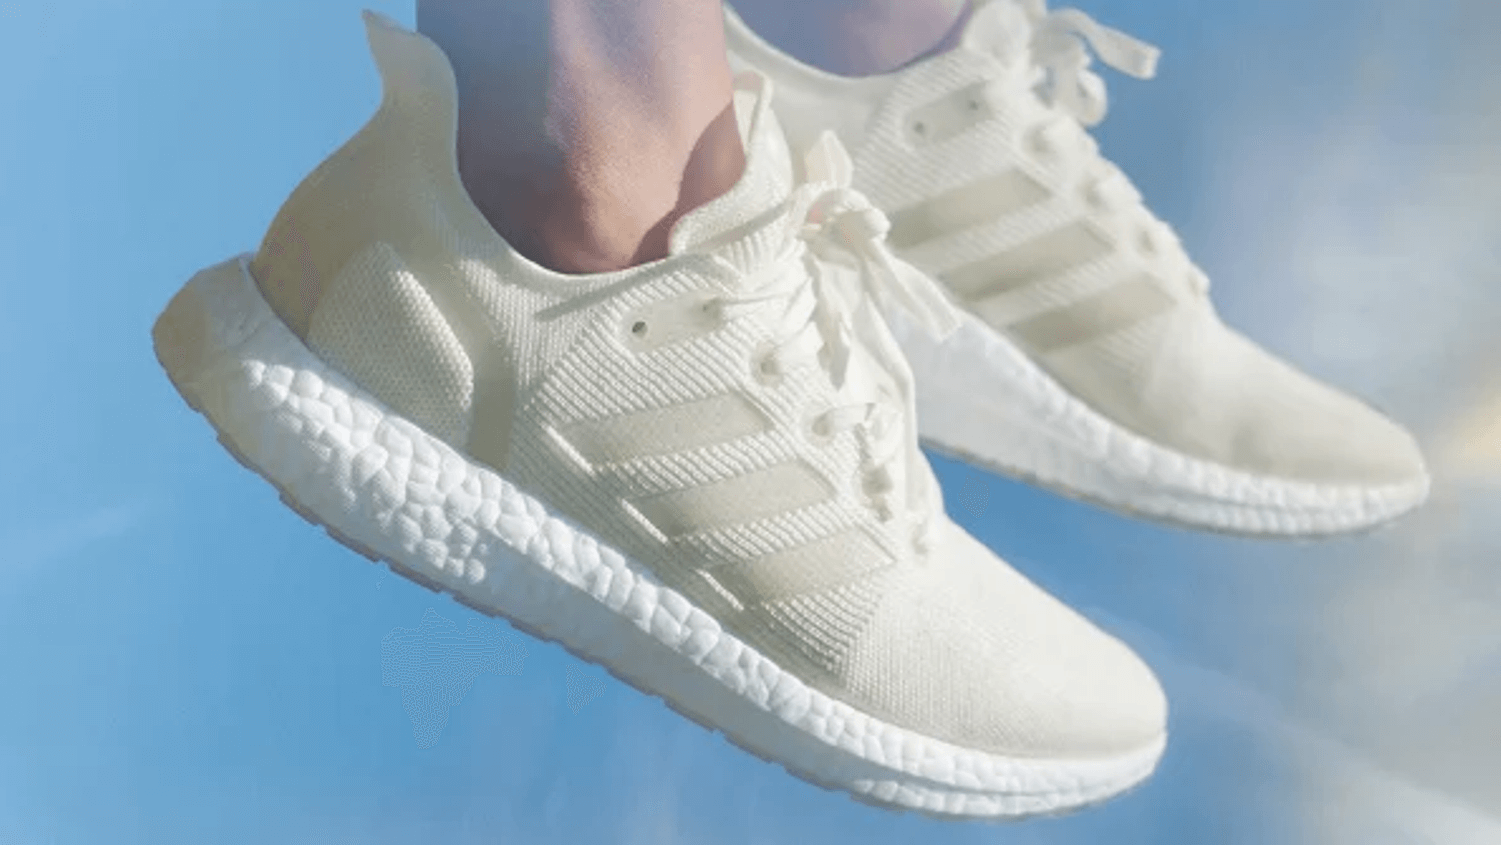 Adidas and Allbirds Will Launch the 'World's Most Sustainable Shoe'